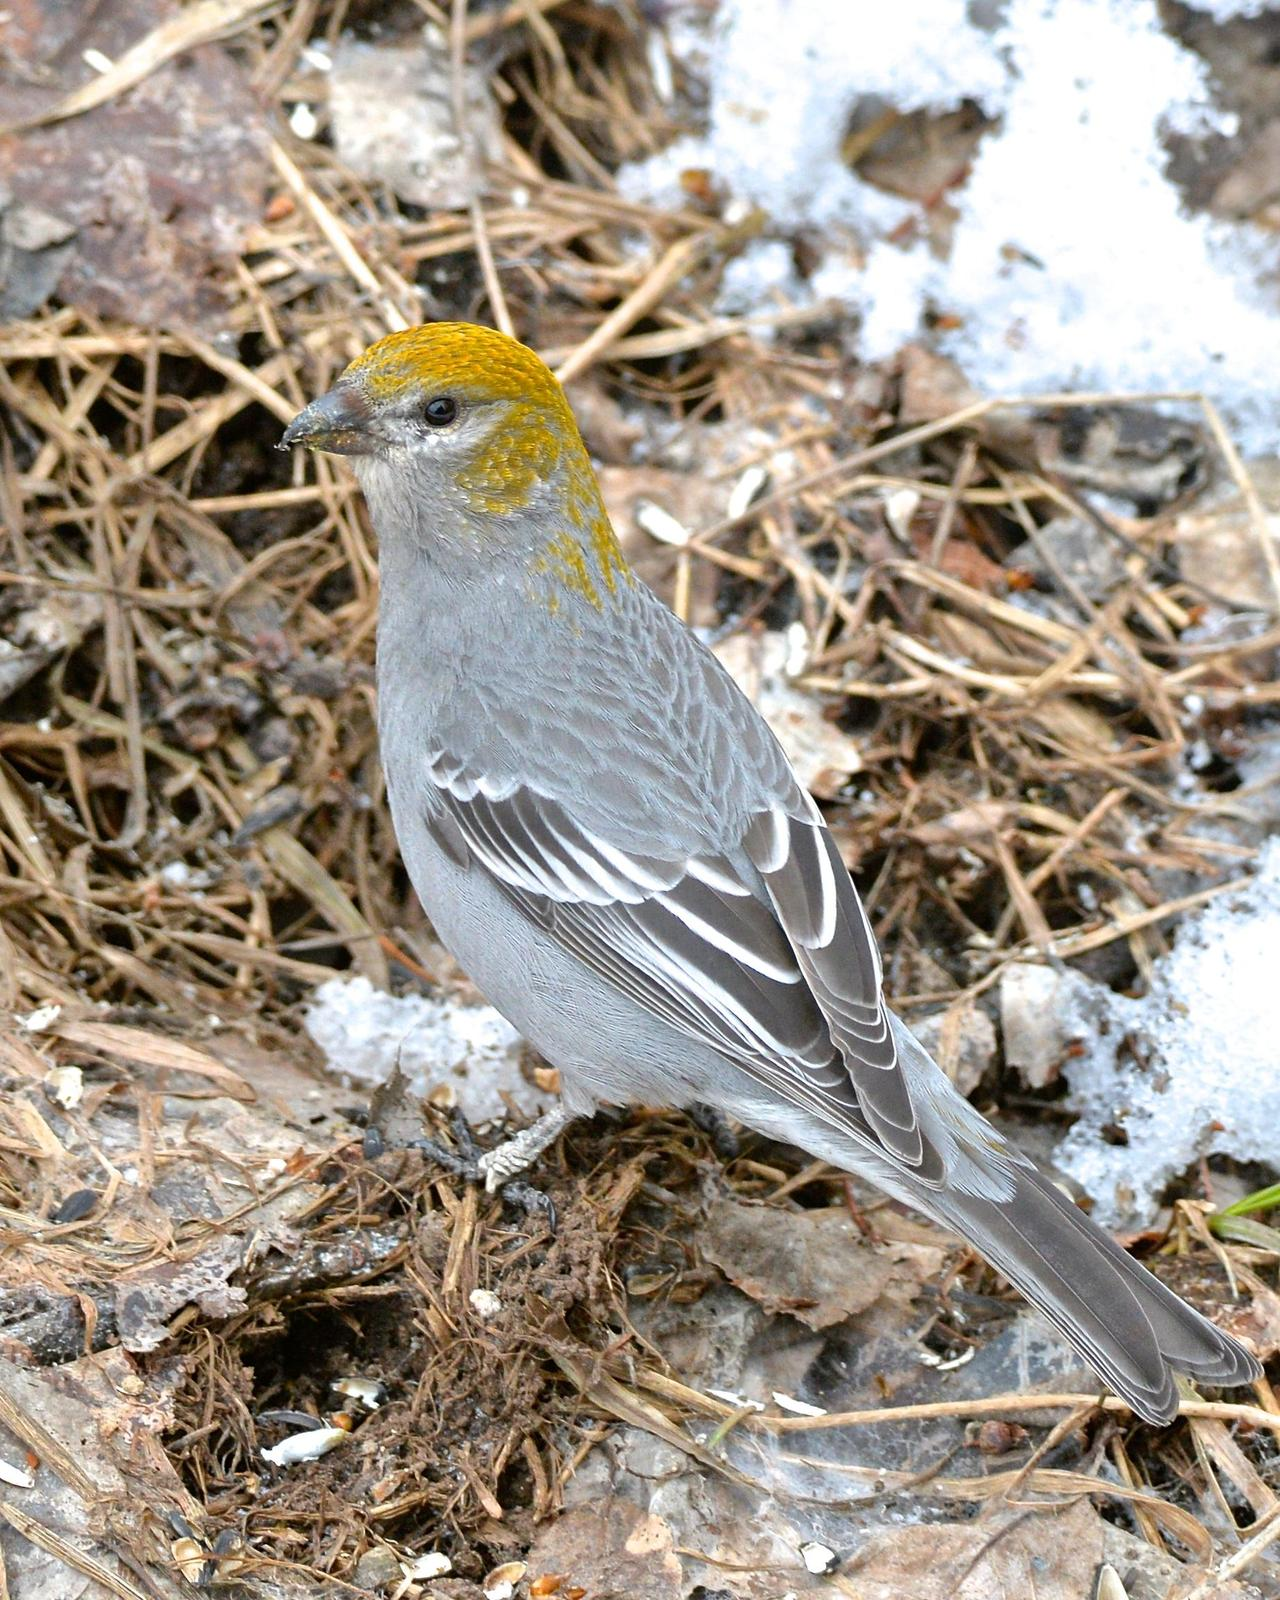 Pine Grosbeak Photo by Gerald Friesen